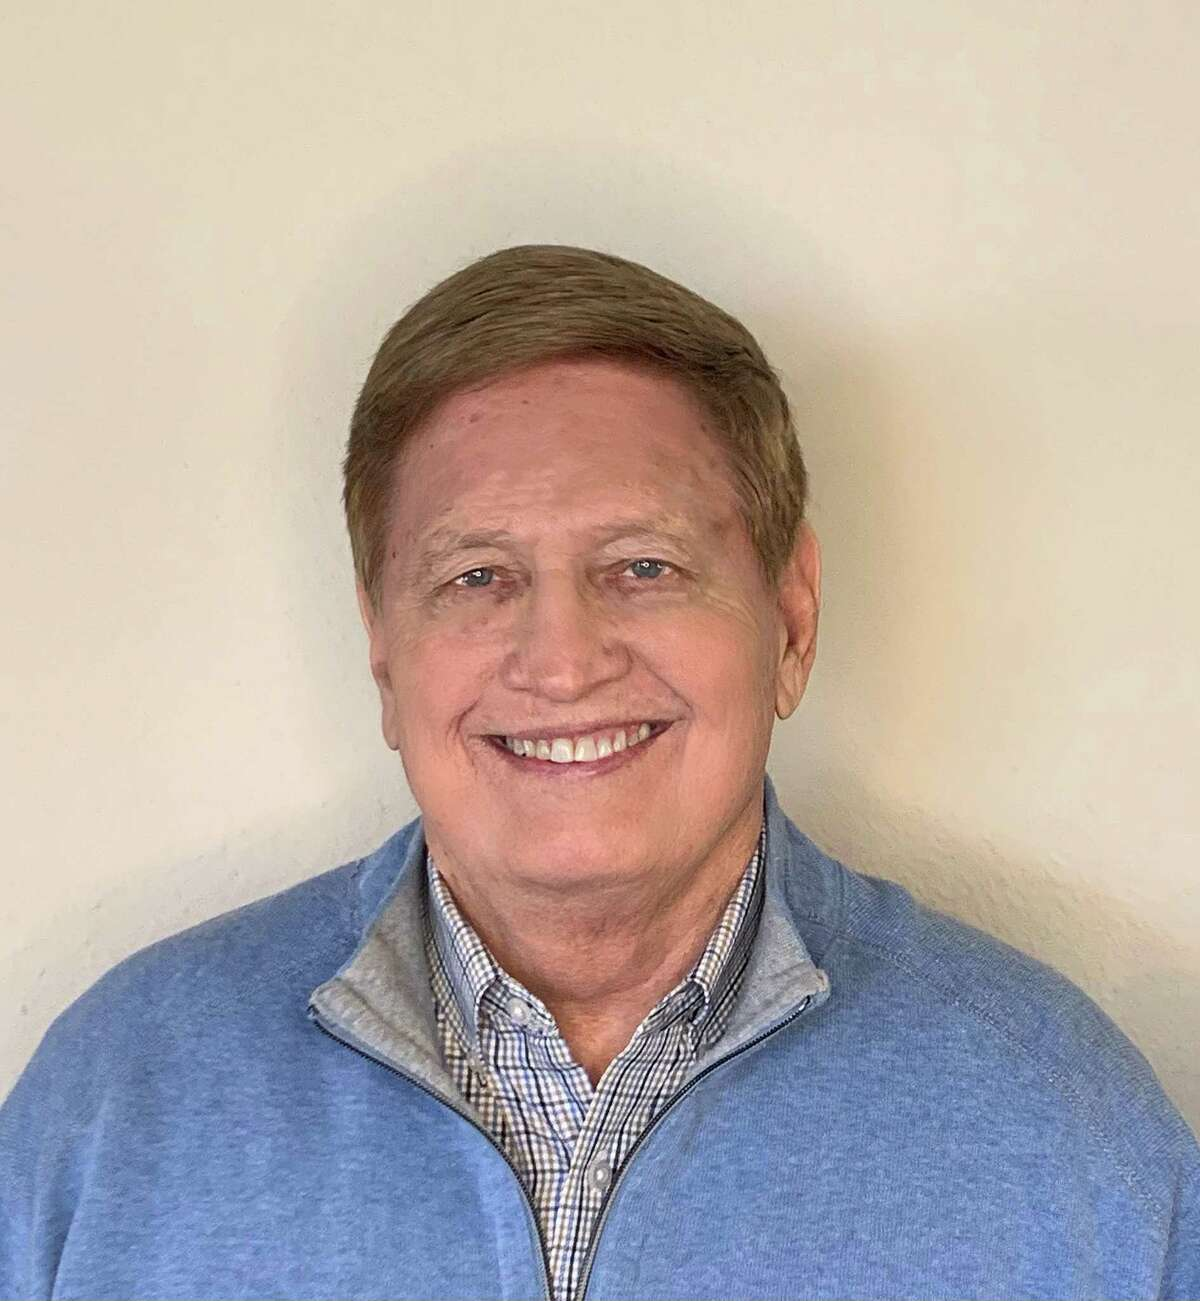 Dr. Glenn Wilkerson was the senior minister at Cypress Creek Christian Church for 35 years.